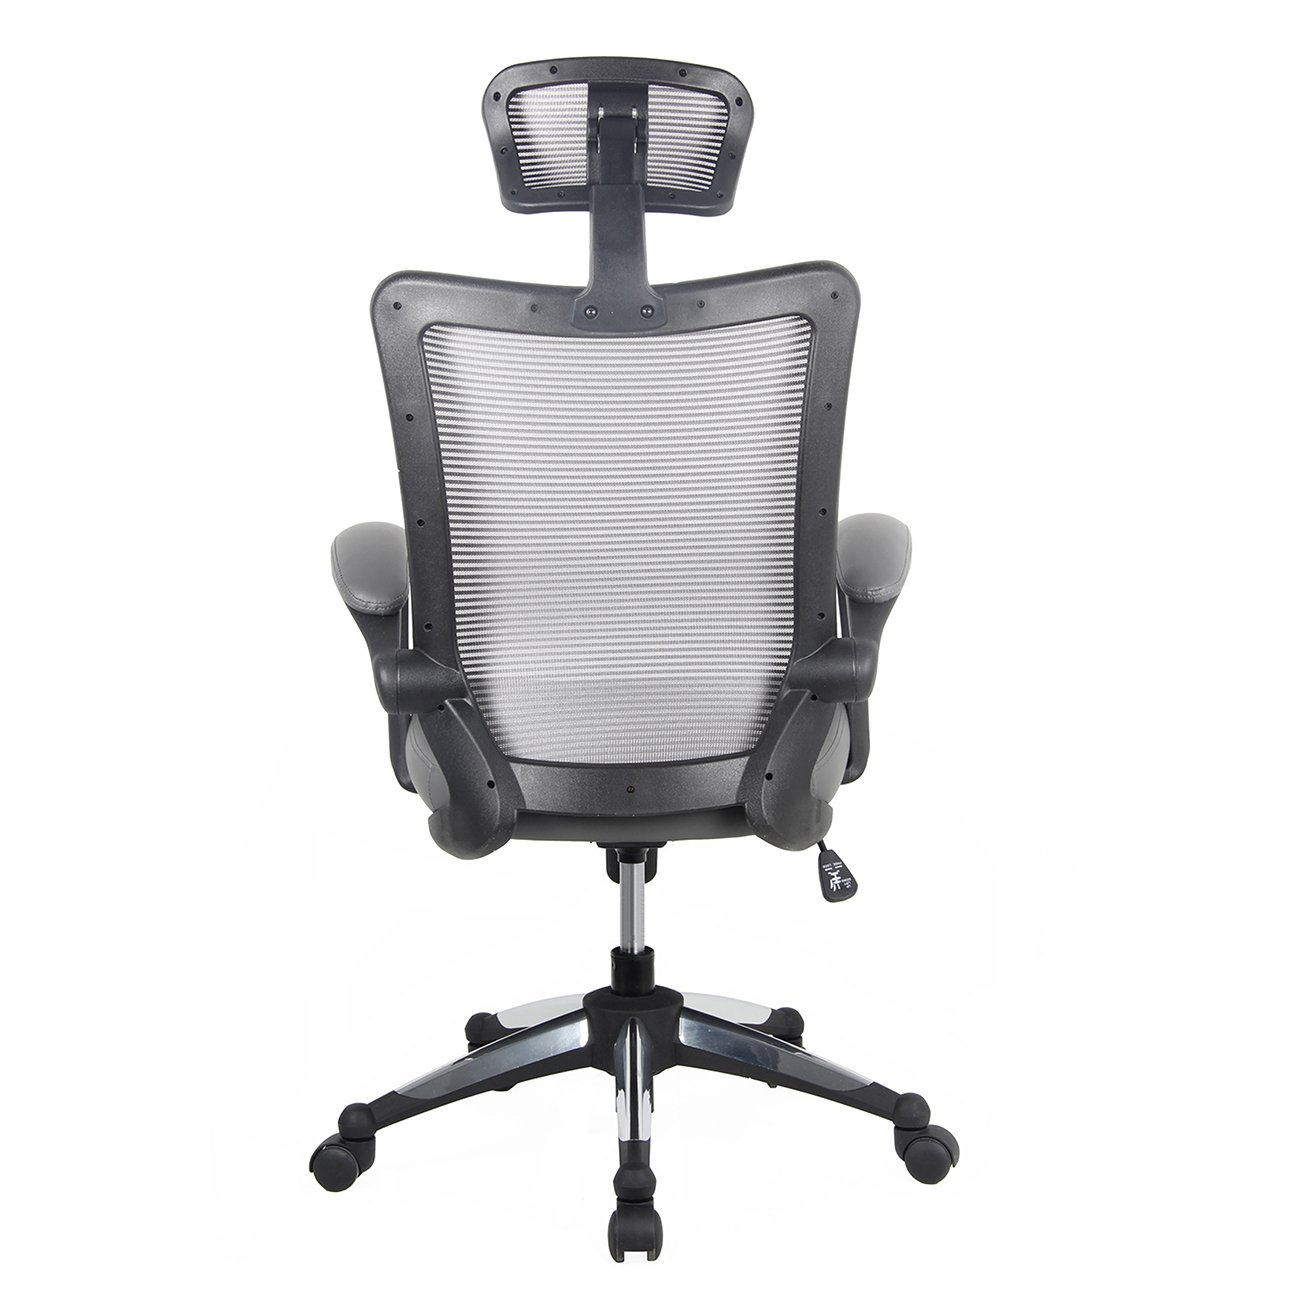 Gray Techni Mobili High-Back Mesh Executive Office Chair with Headrest